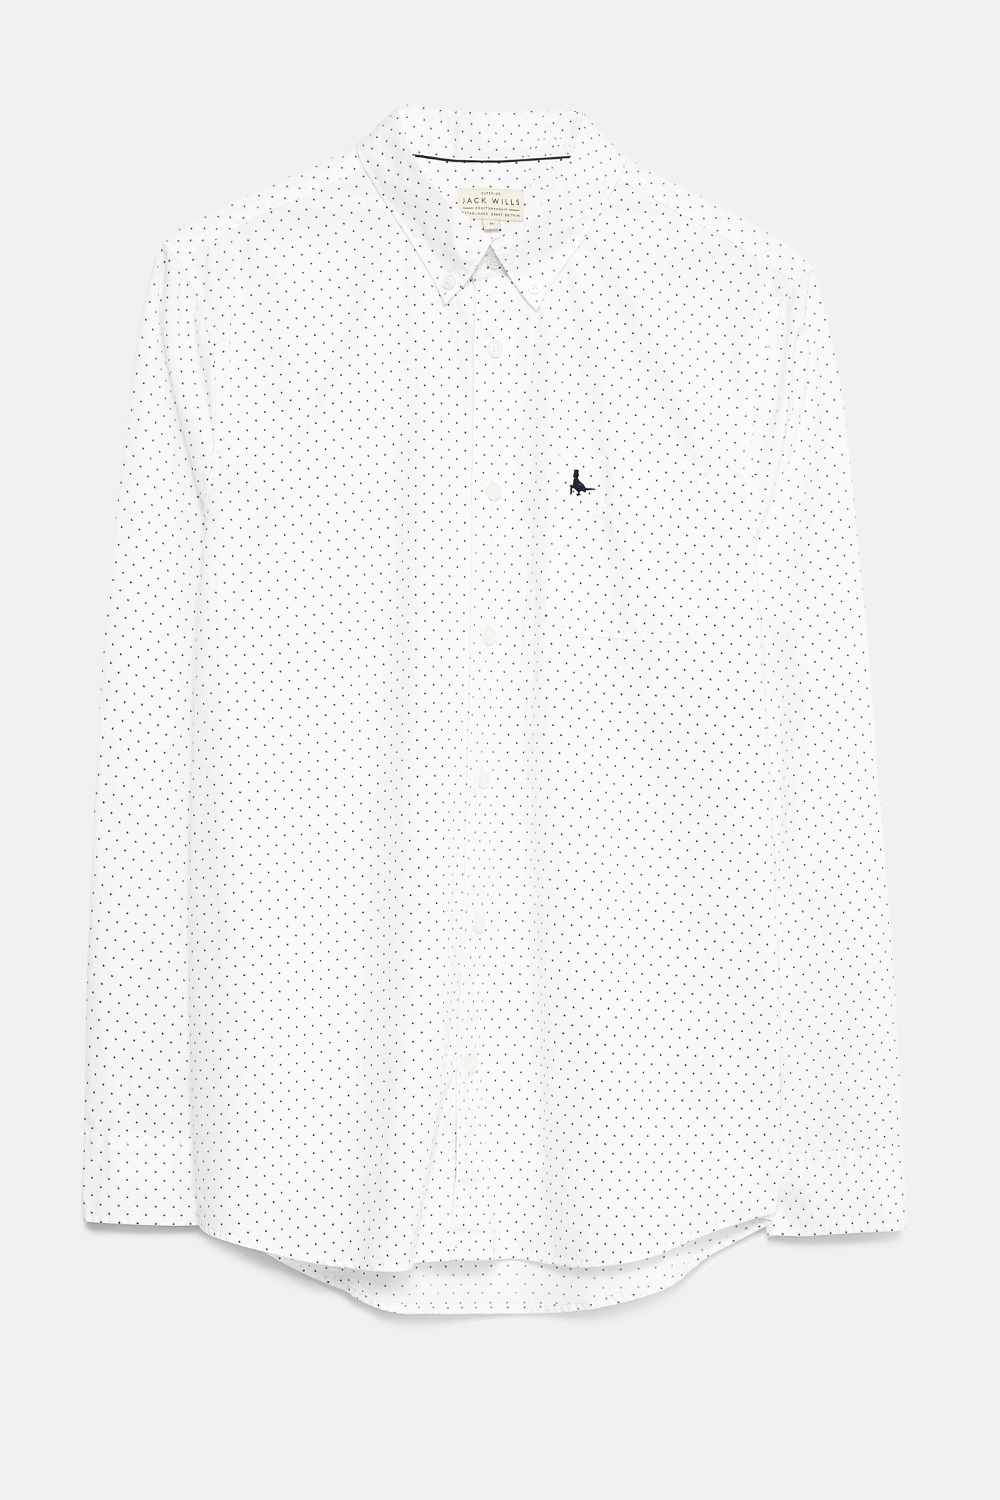 Jack Wills White GLENNHURST PRINTED POPLIN SHIRT